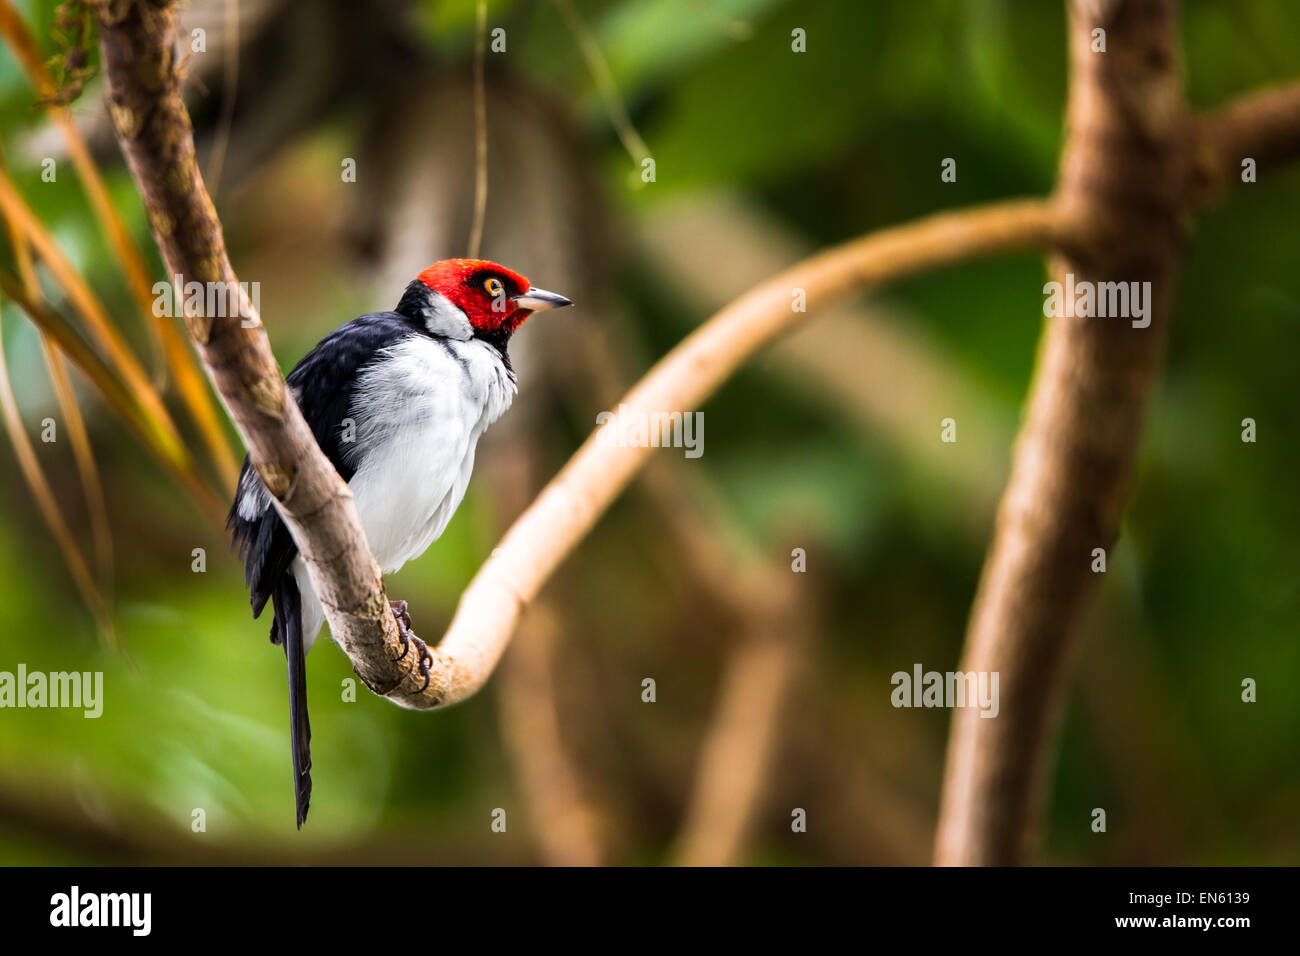 Red-capped cardinal perched on a rainforest branch. The red-capped cardinal (Paroaria gularis) is a small South - Stock Image